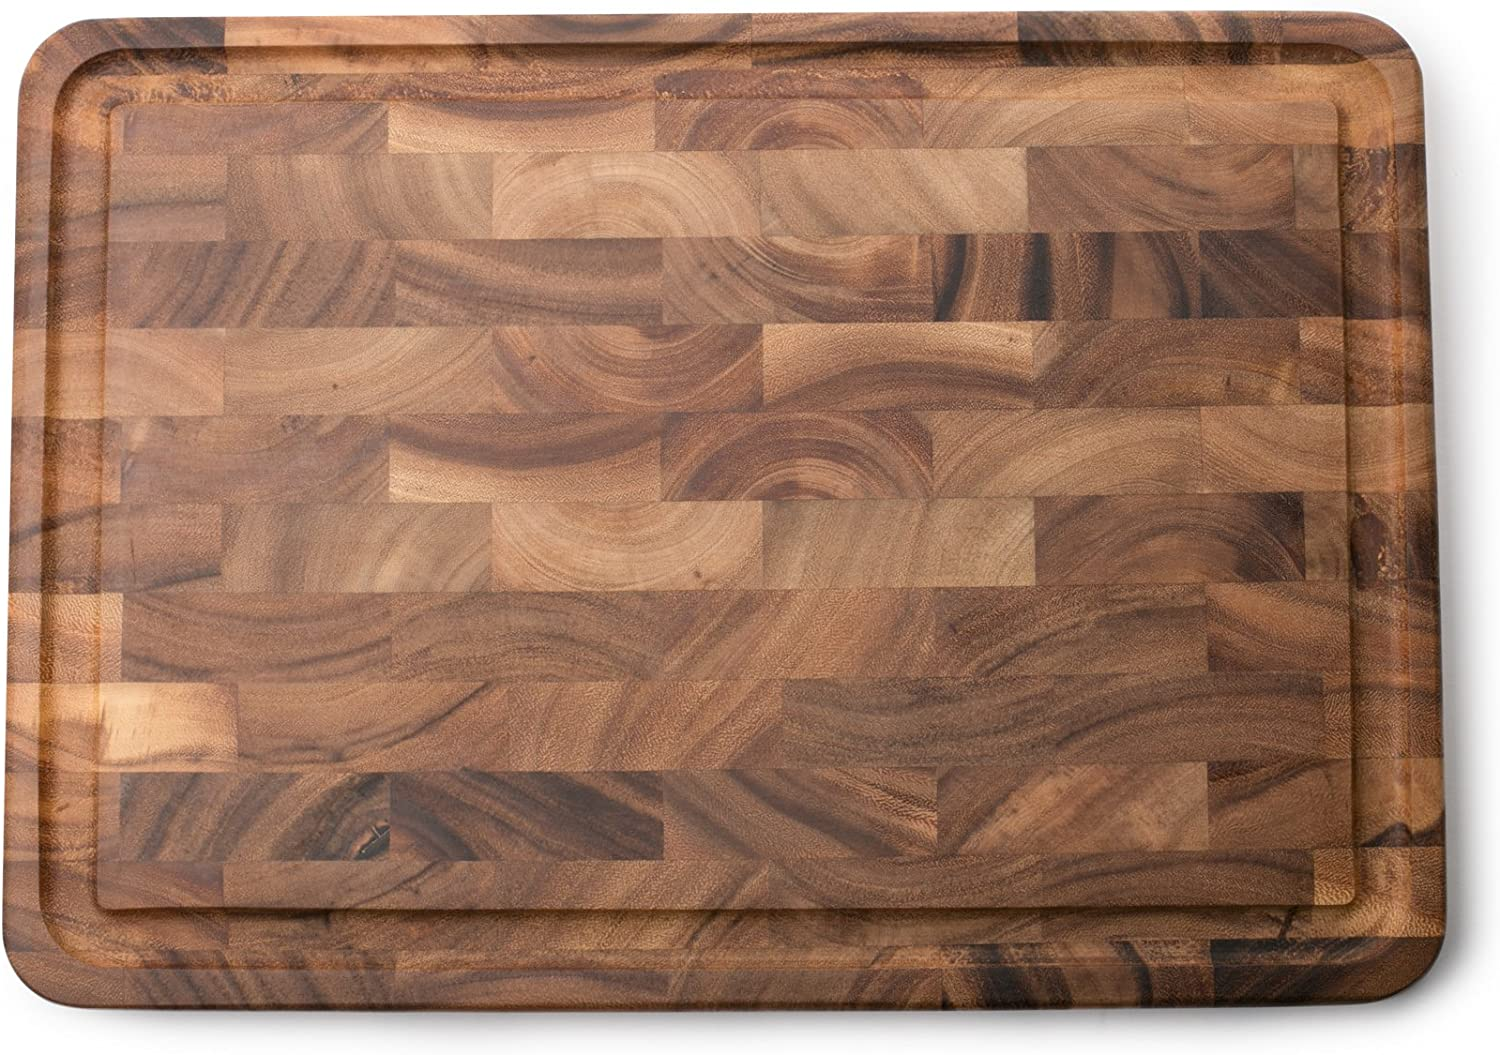 Ironwood Gourmet Charleston End Grain Board with Channel, Acacia Wood